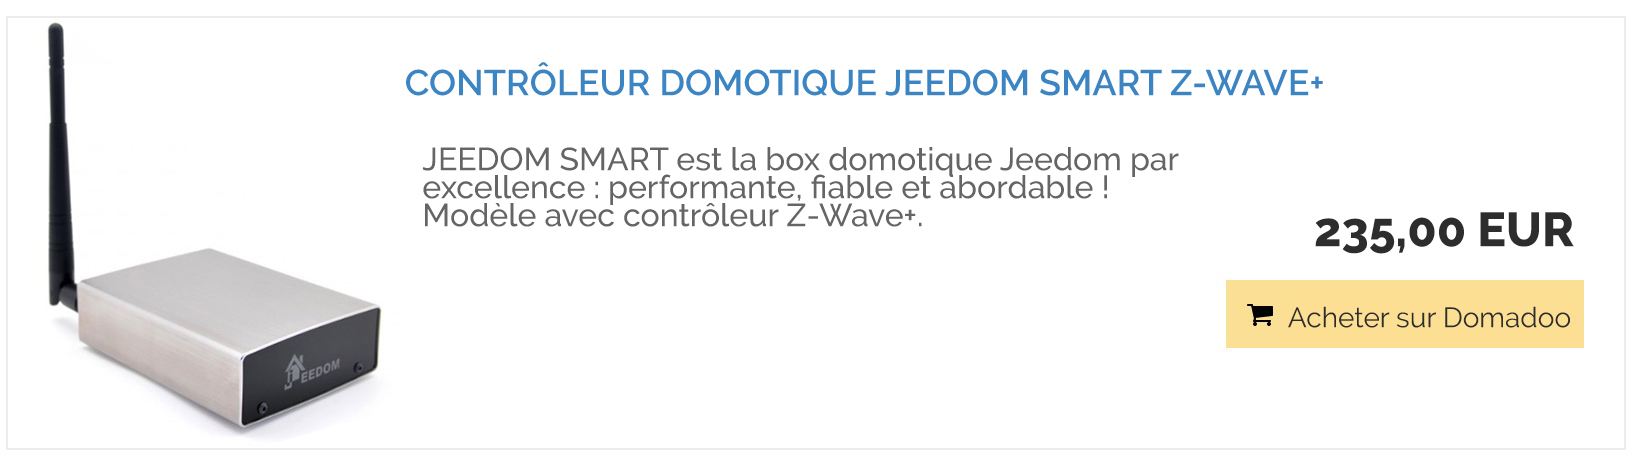 jeedom-smart-domadoo-box-domotique-zwave